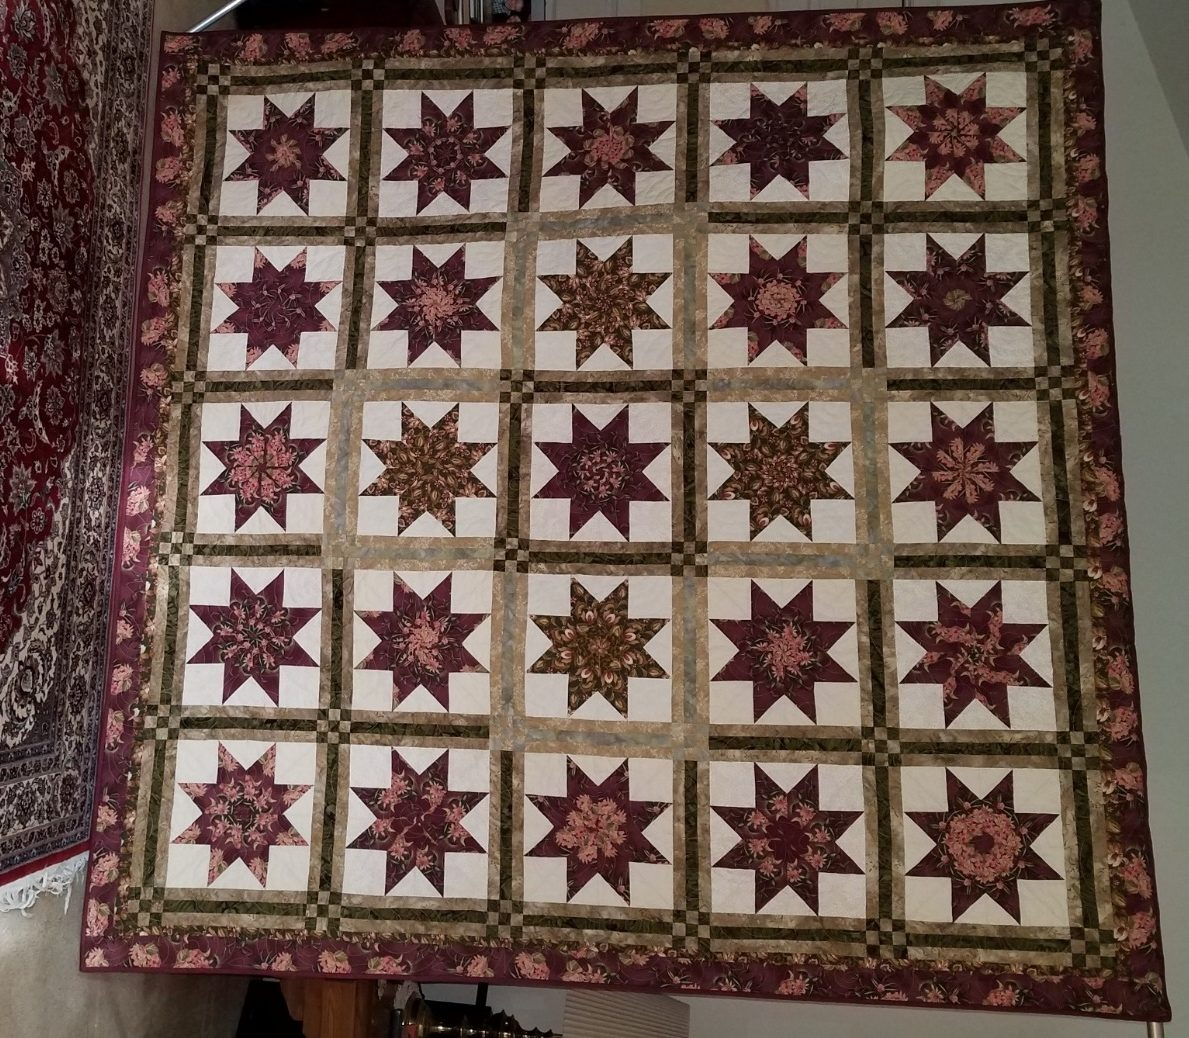 Starburst-Raffle-Quilt-2020-1-rotated